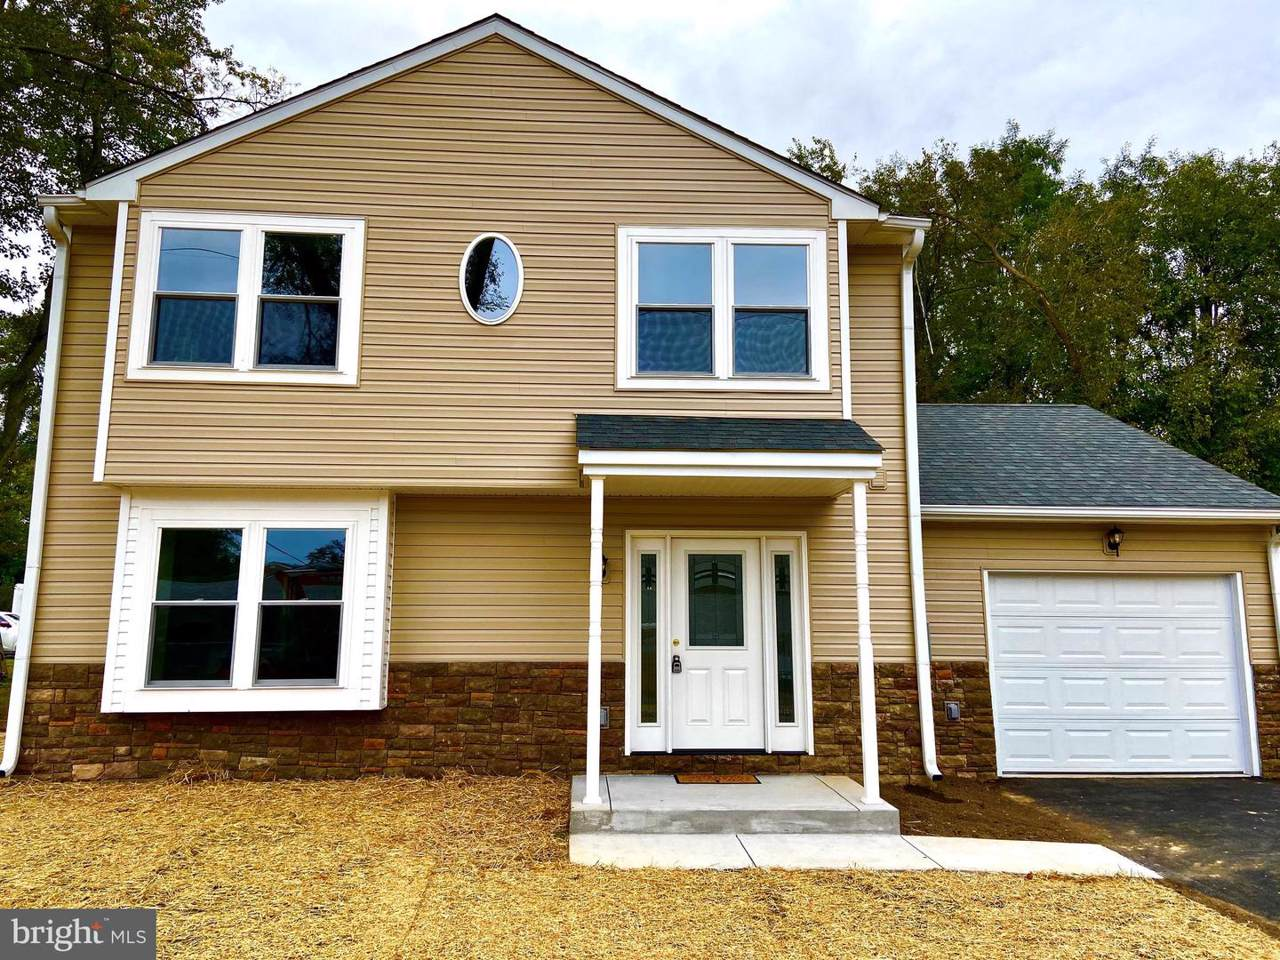 2908 Green Ave. - Photo 1